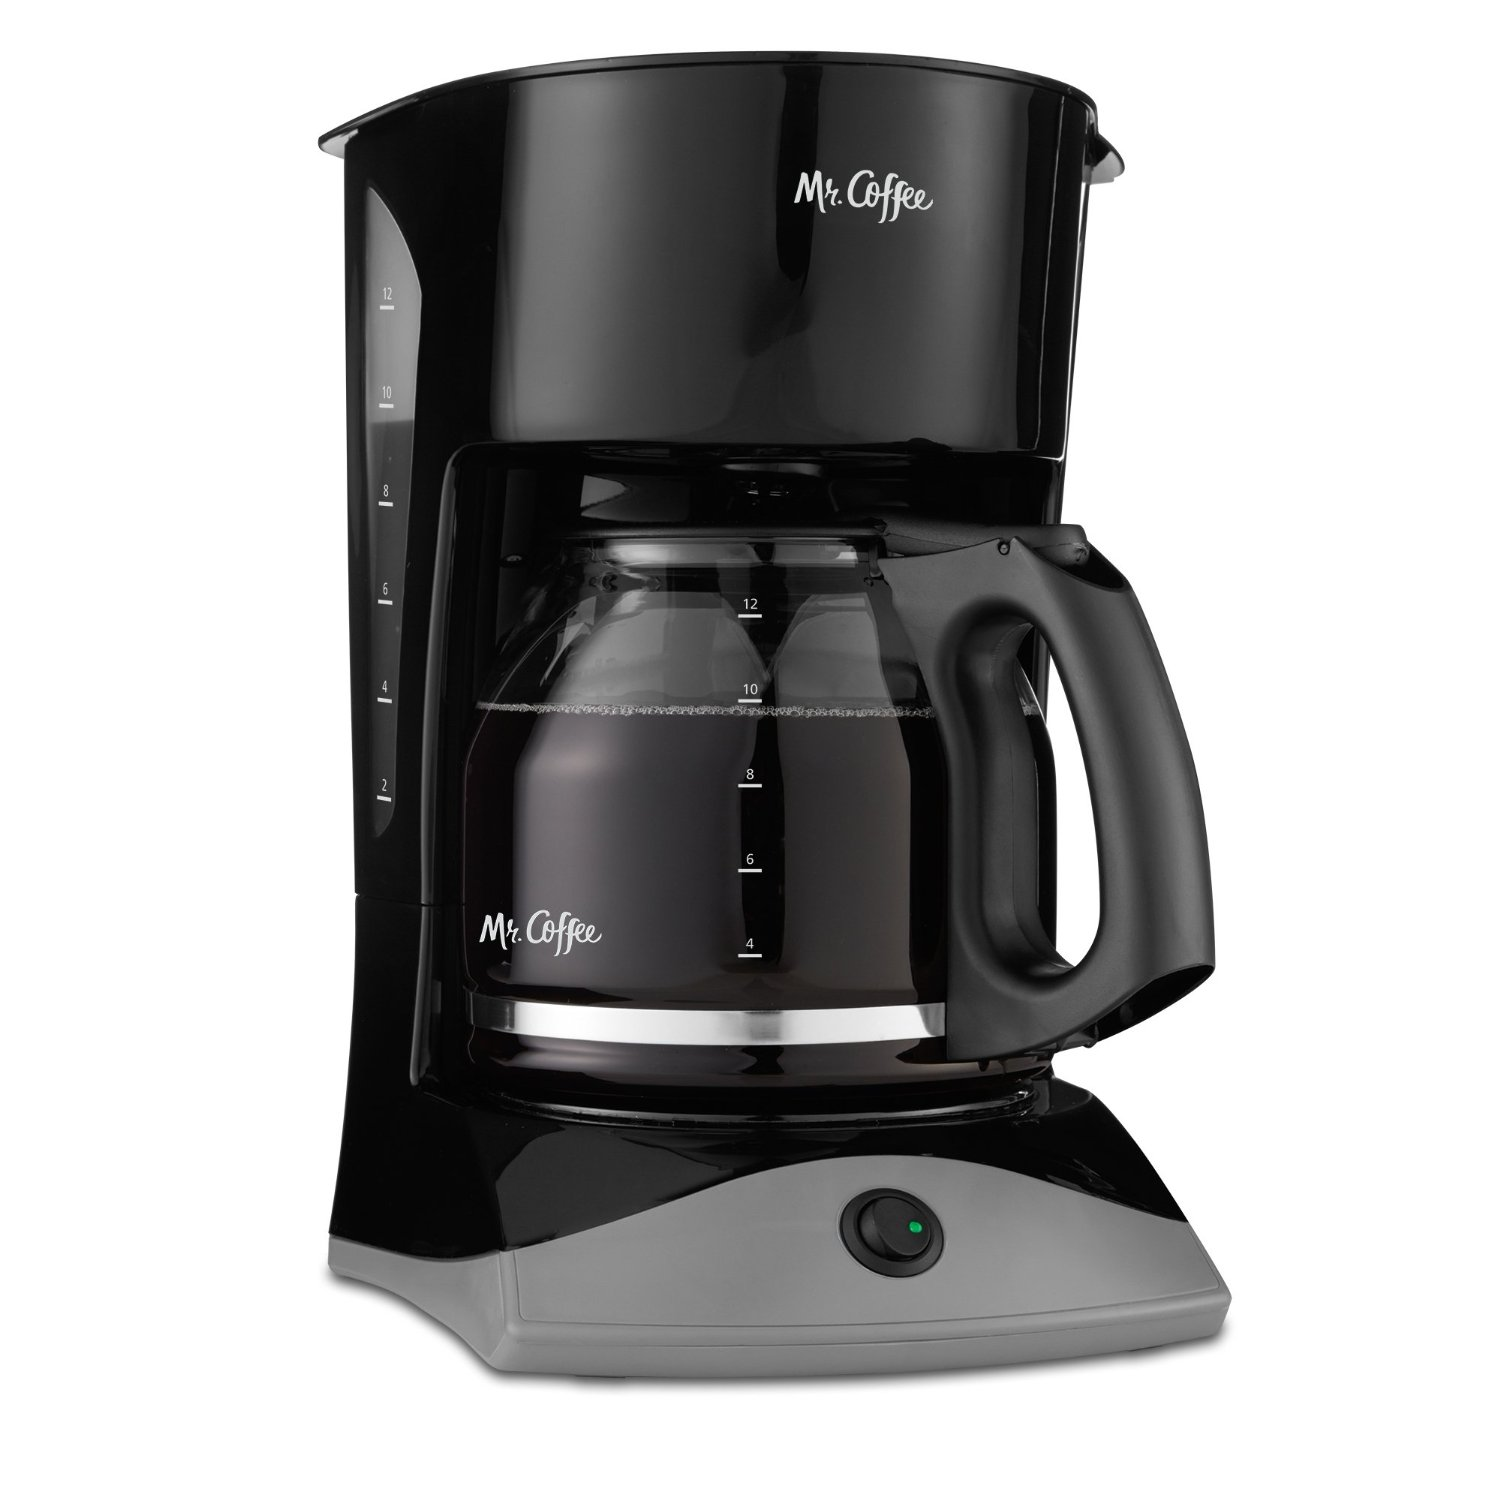 Cleaning Large Coffee Maker : Top 10 Best Coffee Makers 2018 - Top Rated Coffee Maker Reviews